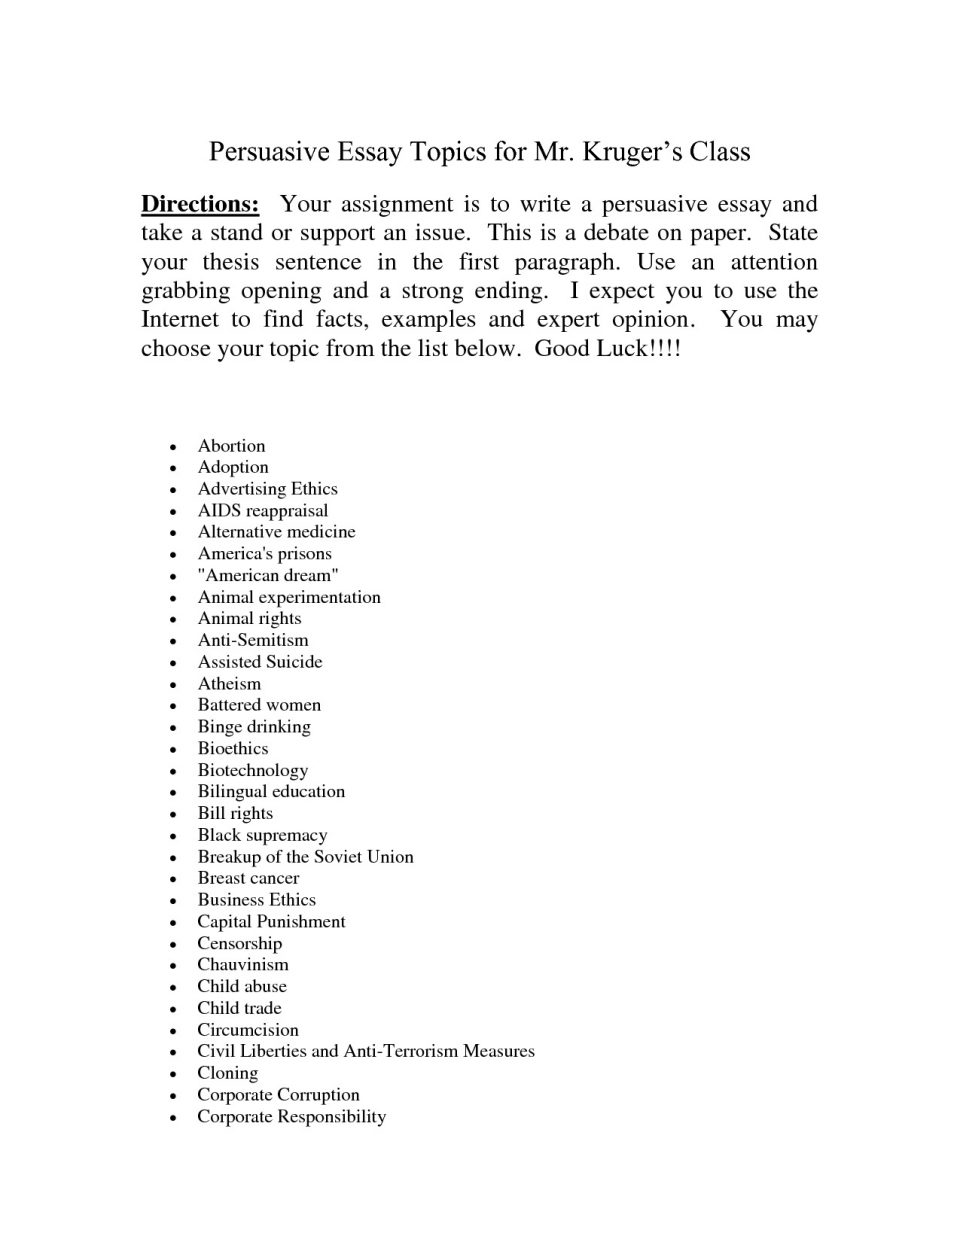 016 Research Paper Interesting Topics Topic For Essay Barca Fontanacountryinn Within Good Persuasive Narrative To Write Abo Easy About Personal Descriptive Surprising In History Papers Scientific High School Students Us Full